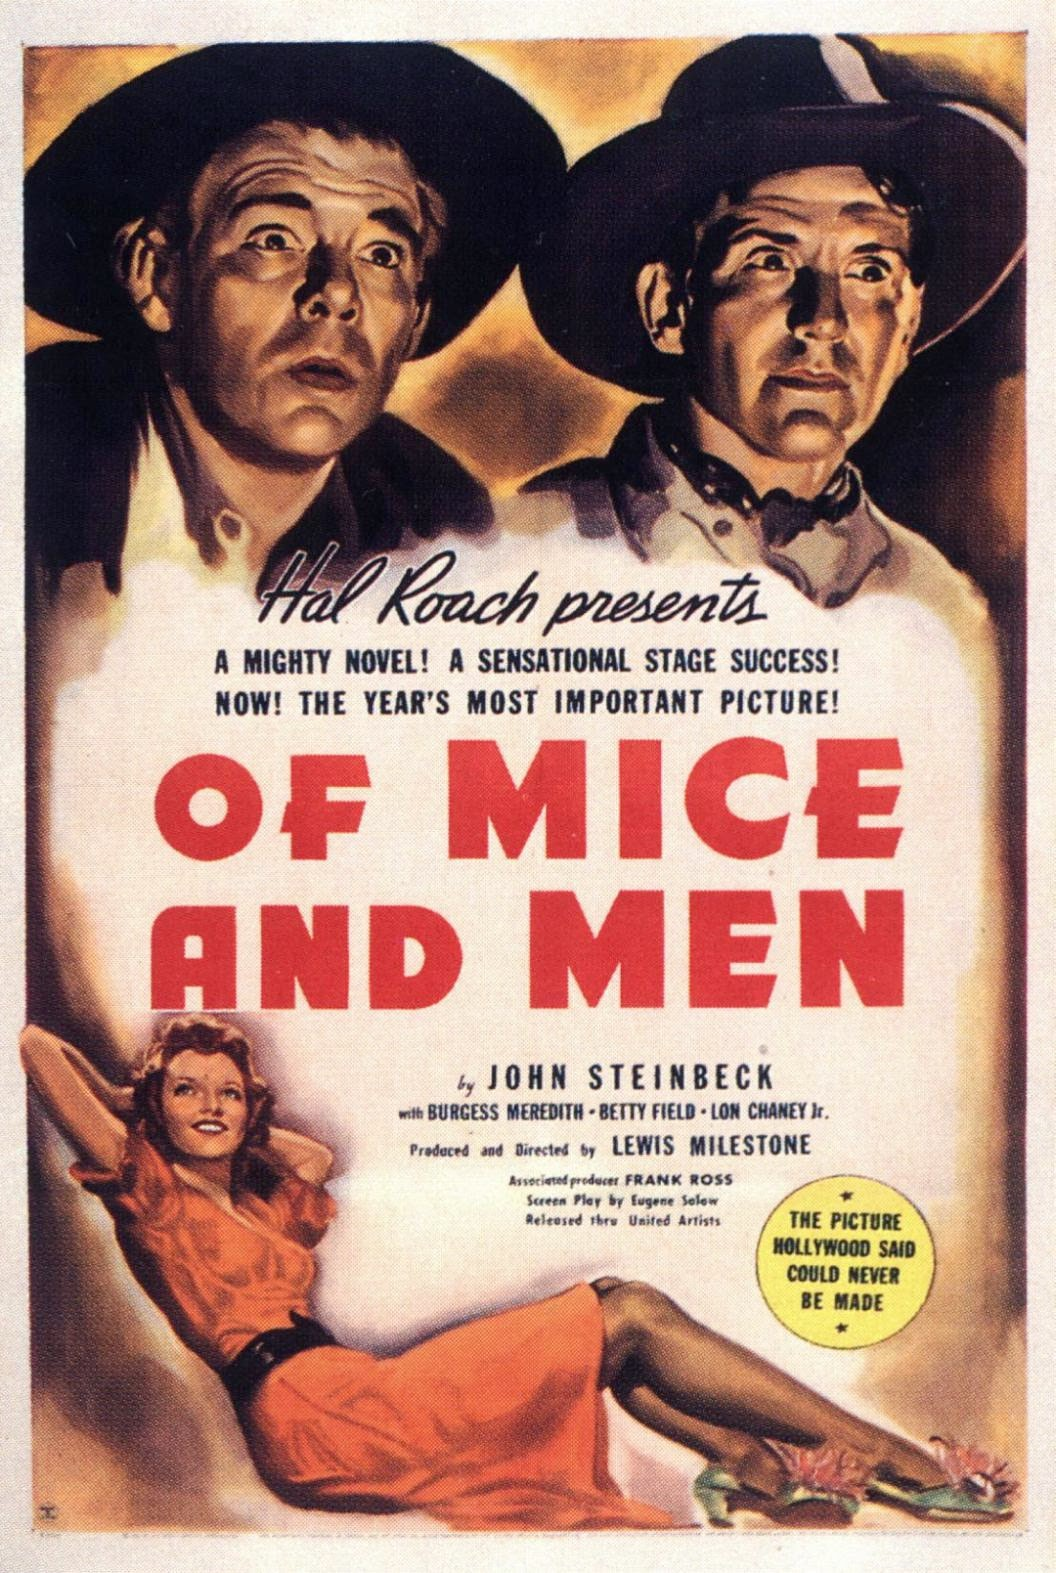 of mice and men 1939 movie poster